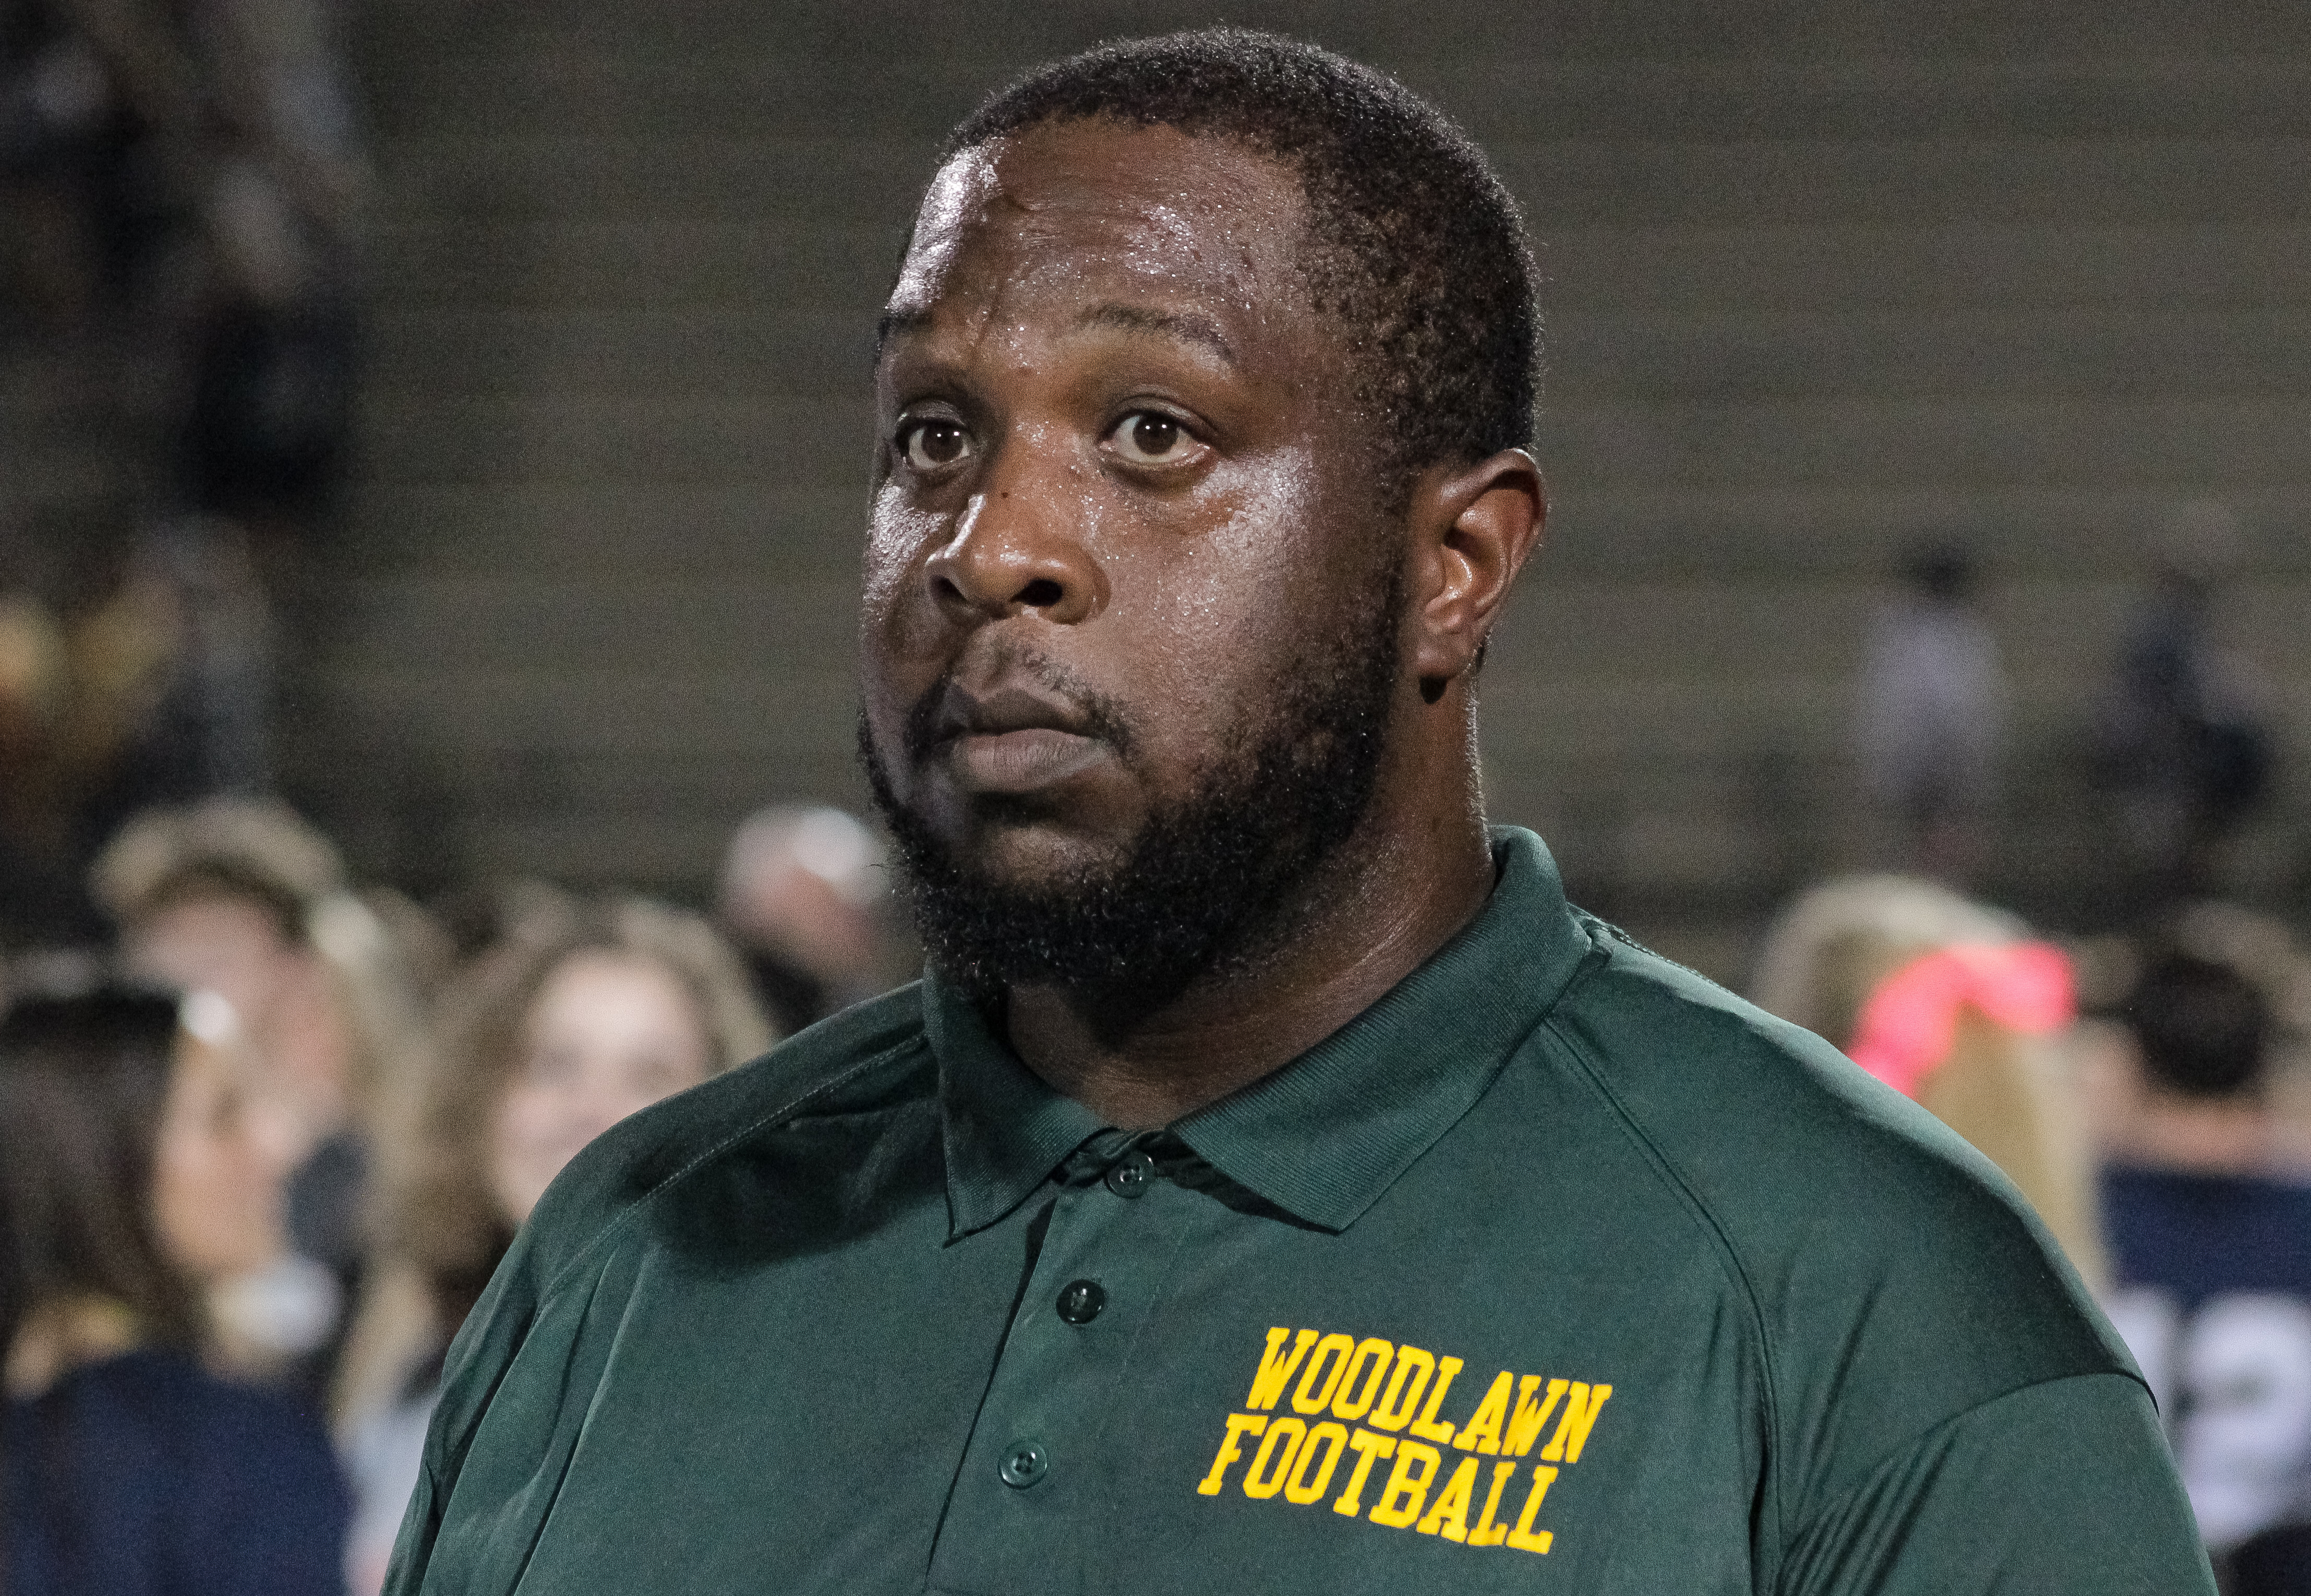 Woodlawn head coach Jerry Davenport